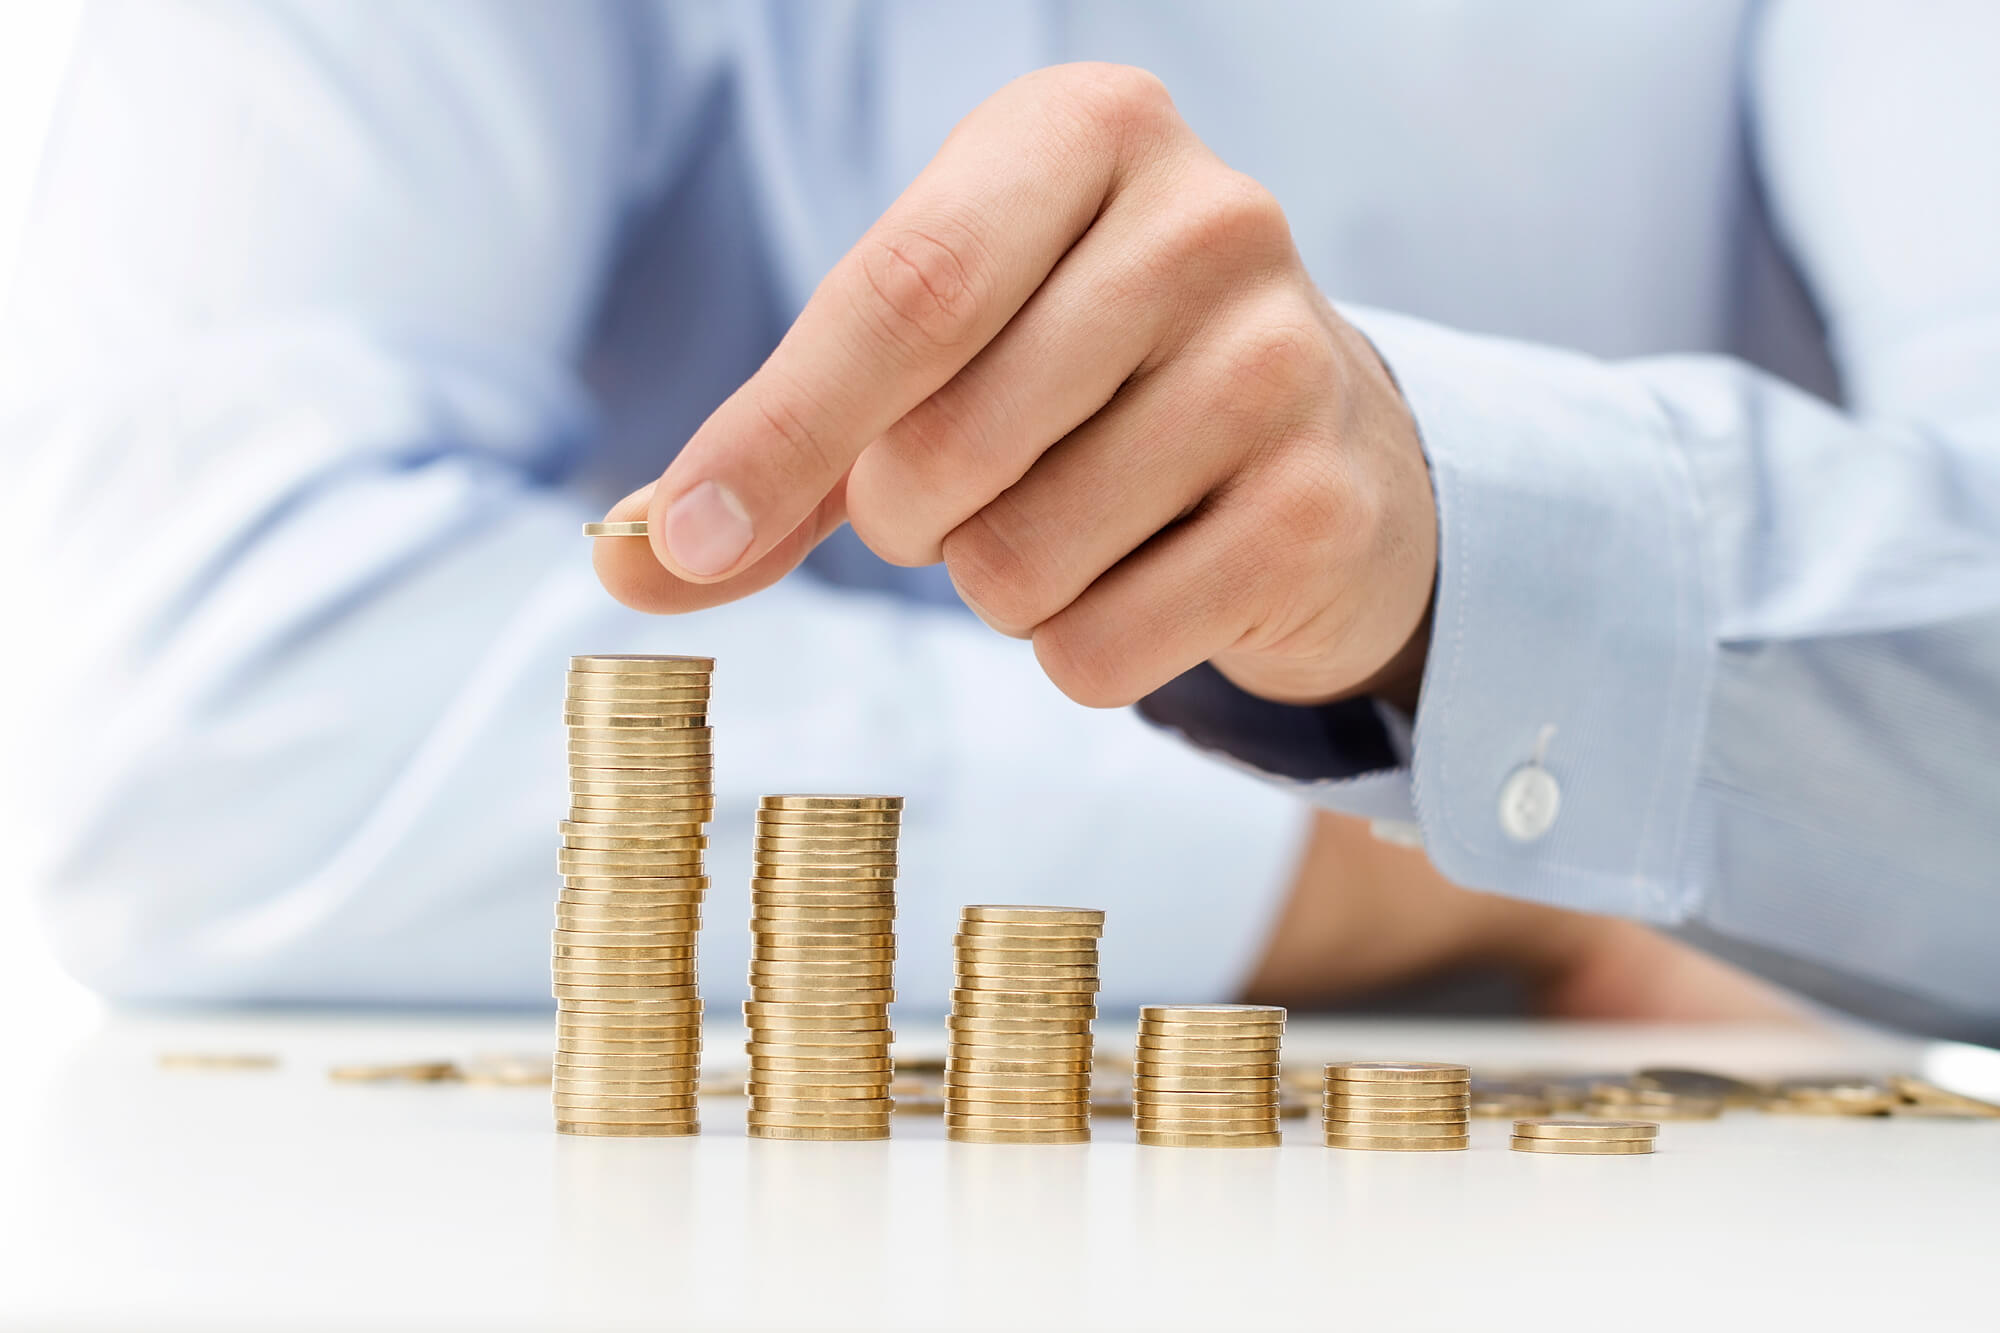 get free debt counseling to manage your personal finances